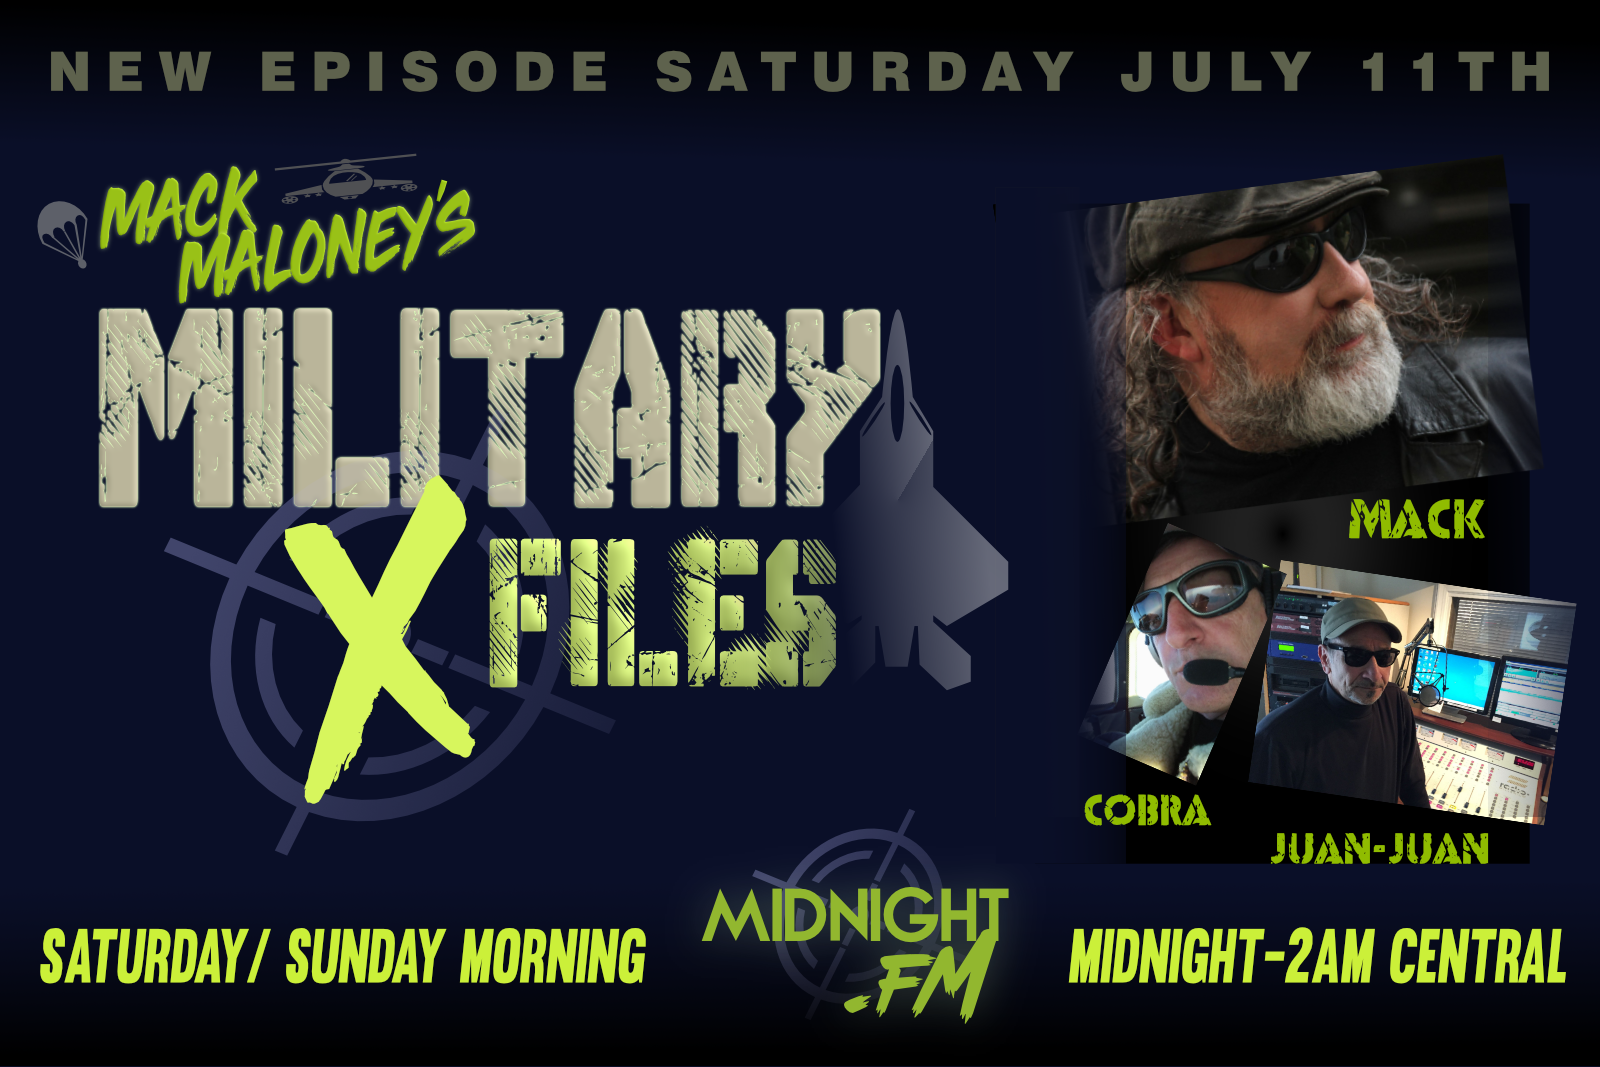 Military X-Files promo with Mack Maloney, Juan-Juan, and Cobra